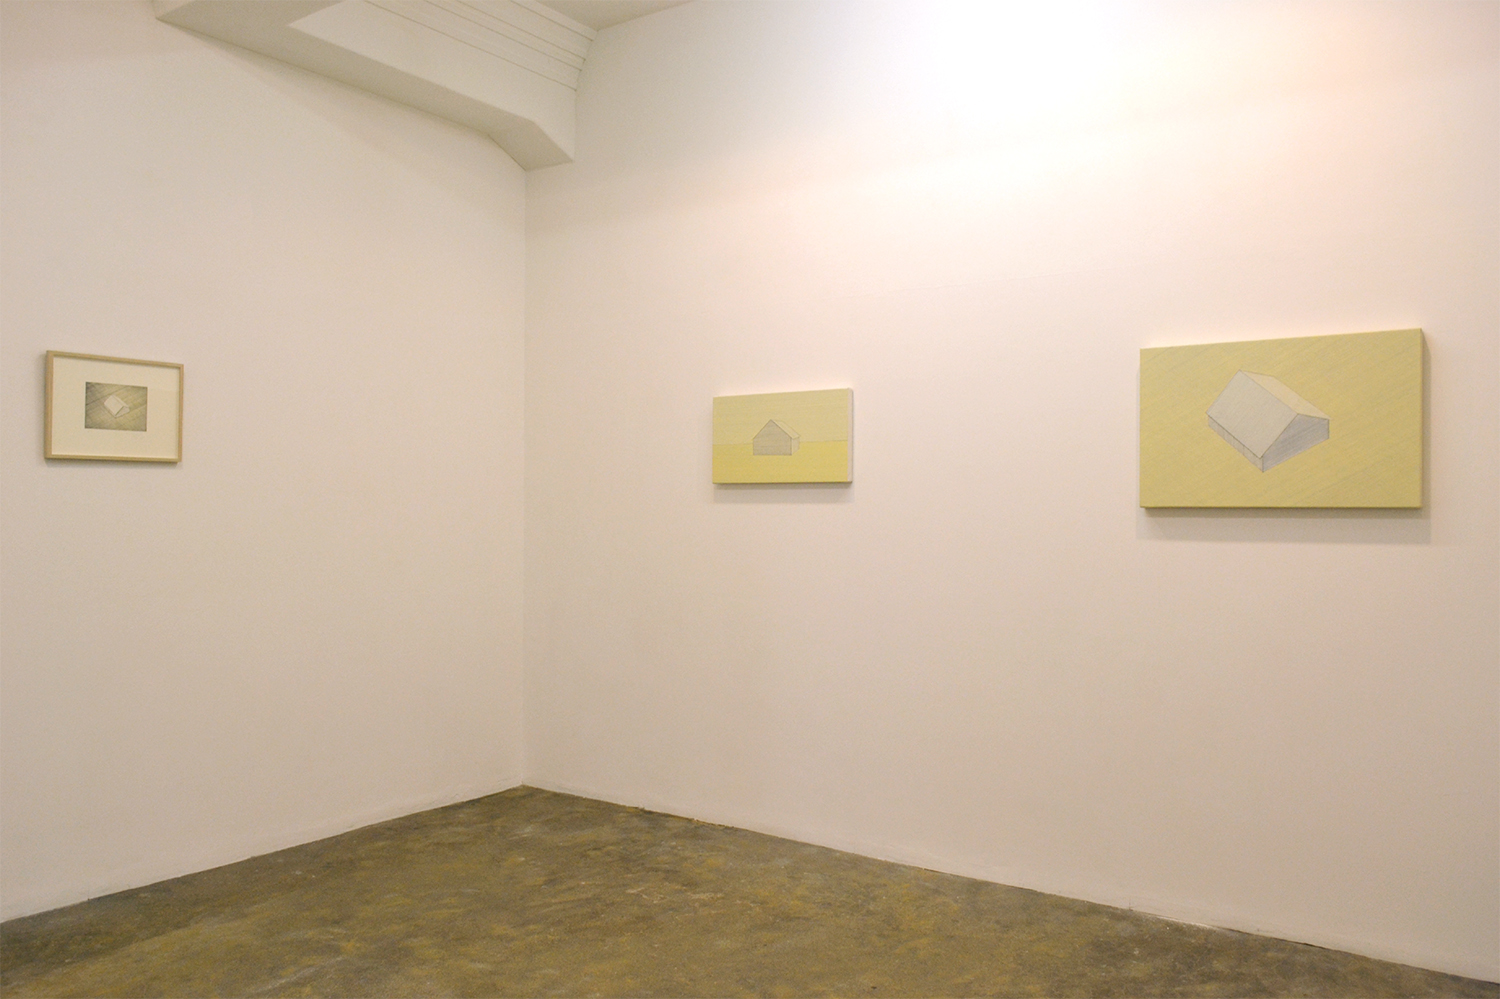 Installation View|House series